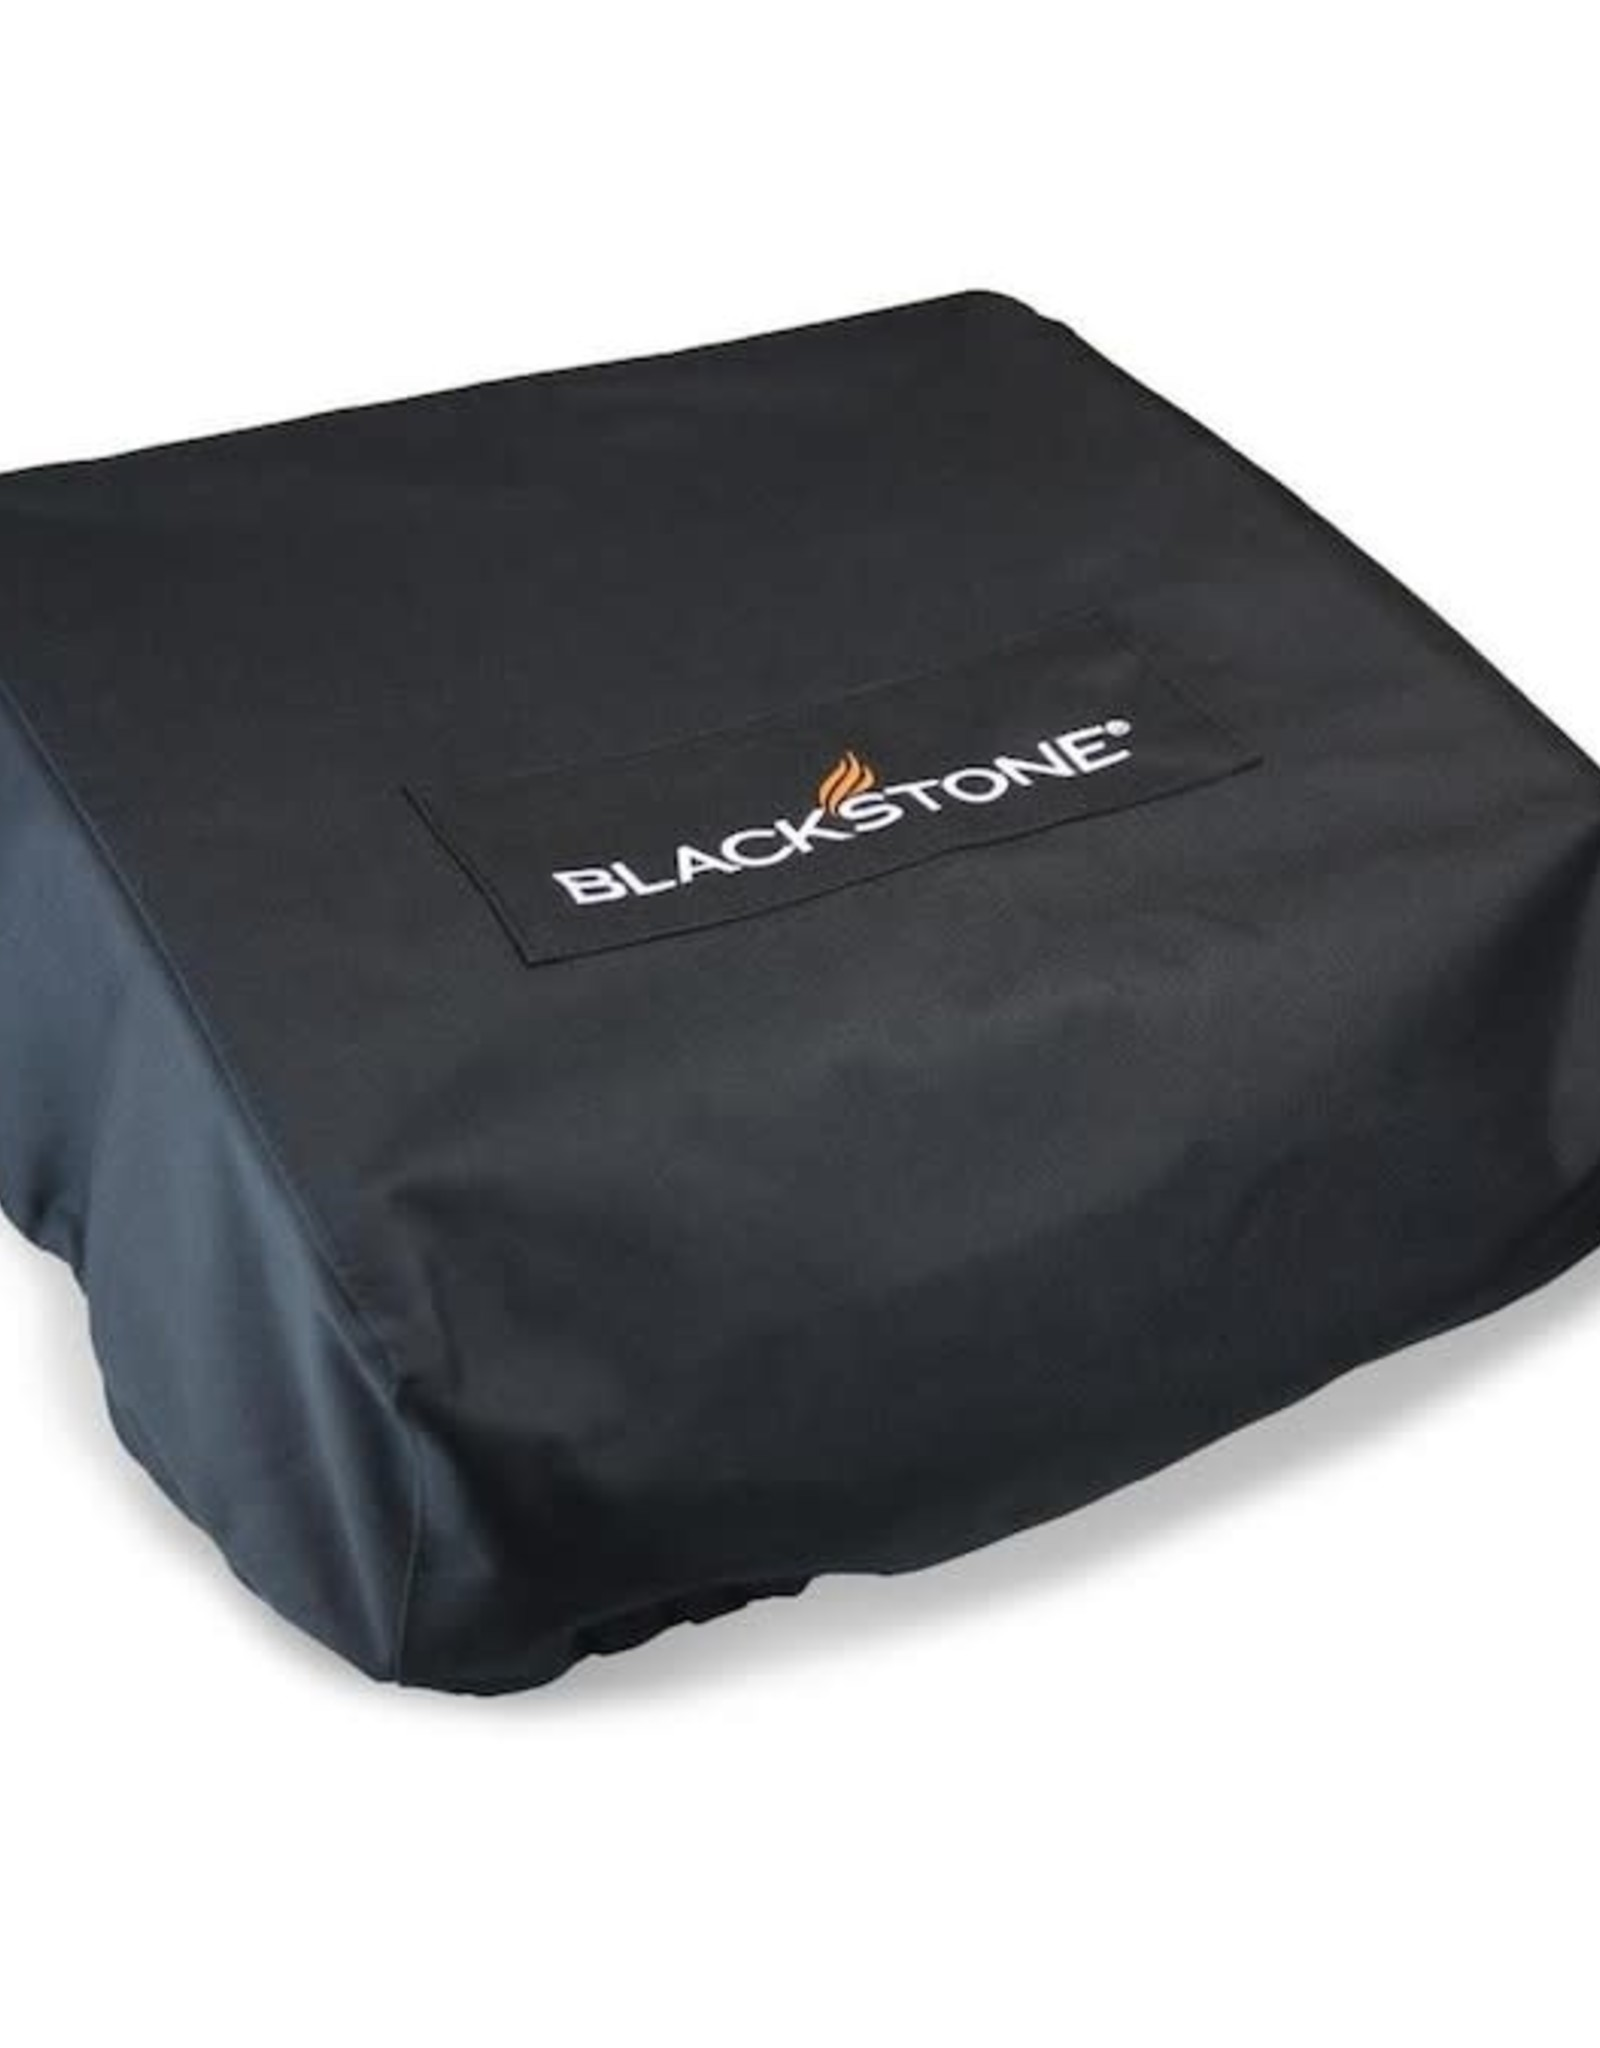 "Blackstone Blackstone 17"" Tabletop Griddle Cover & Carry Bag 2 - Piece Set 1720"